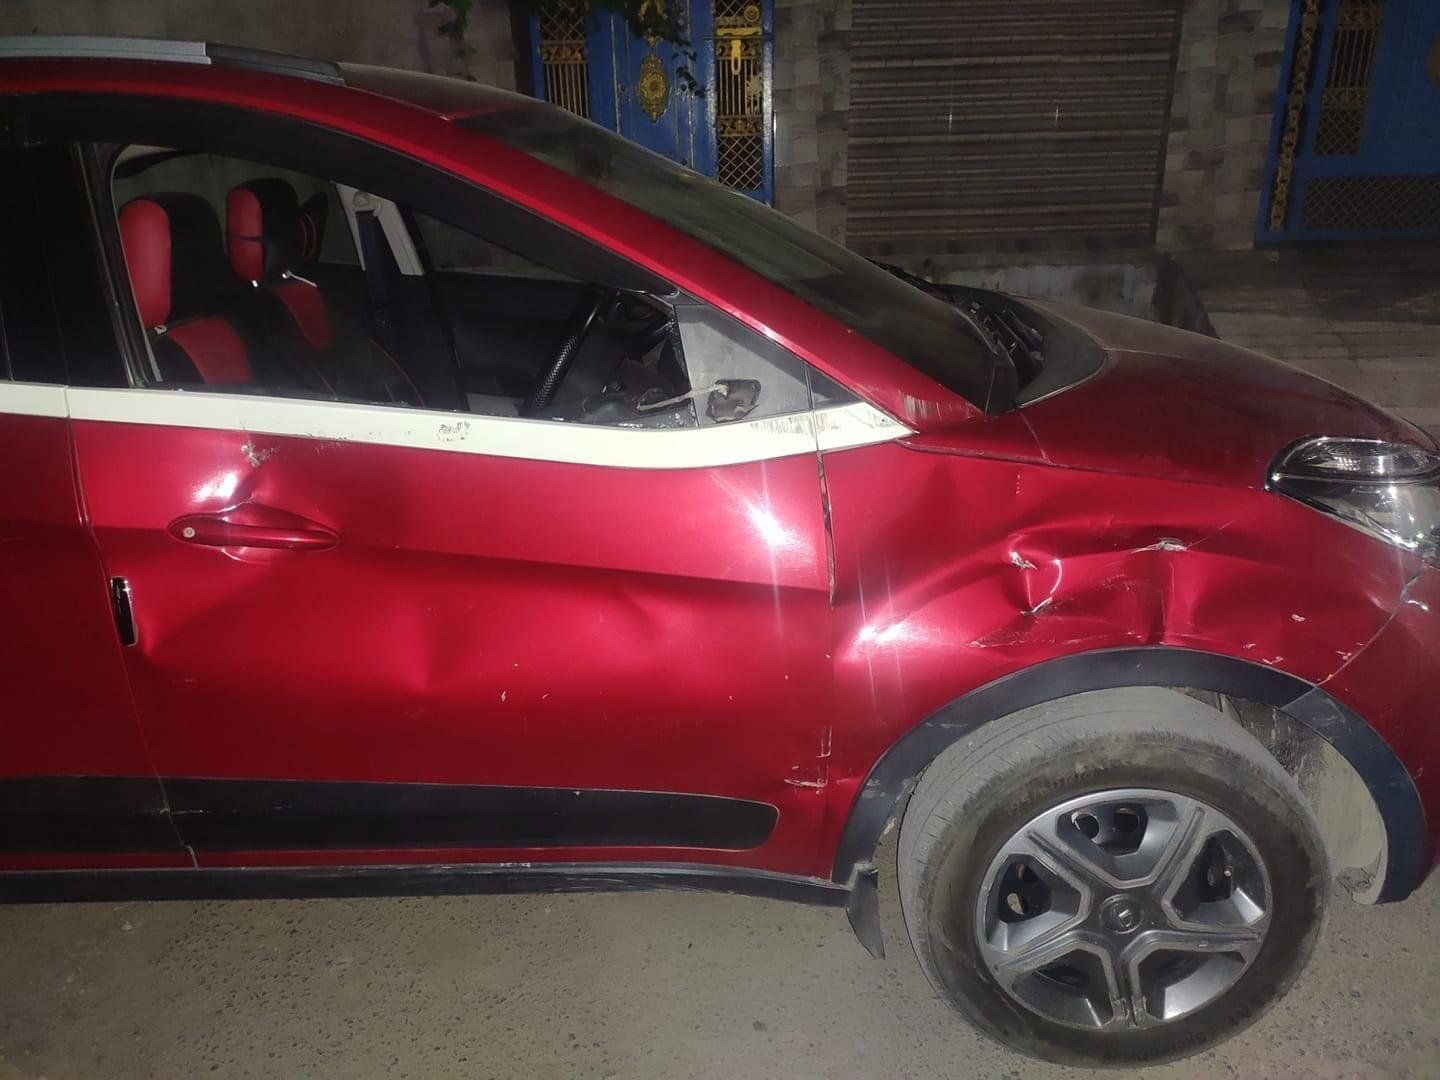 Tata Nexon Has Accident With Truck At 60 Kmph, Nobody Gets Even A Scratch